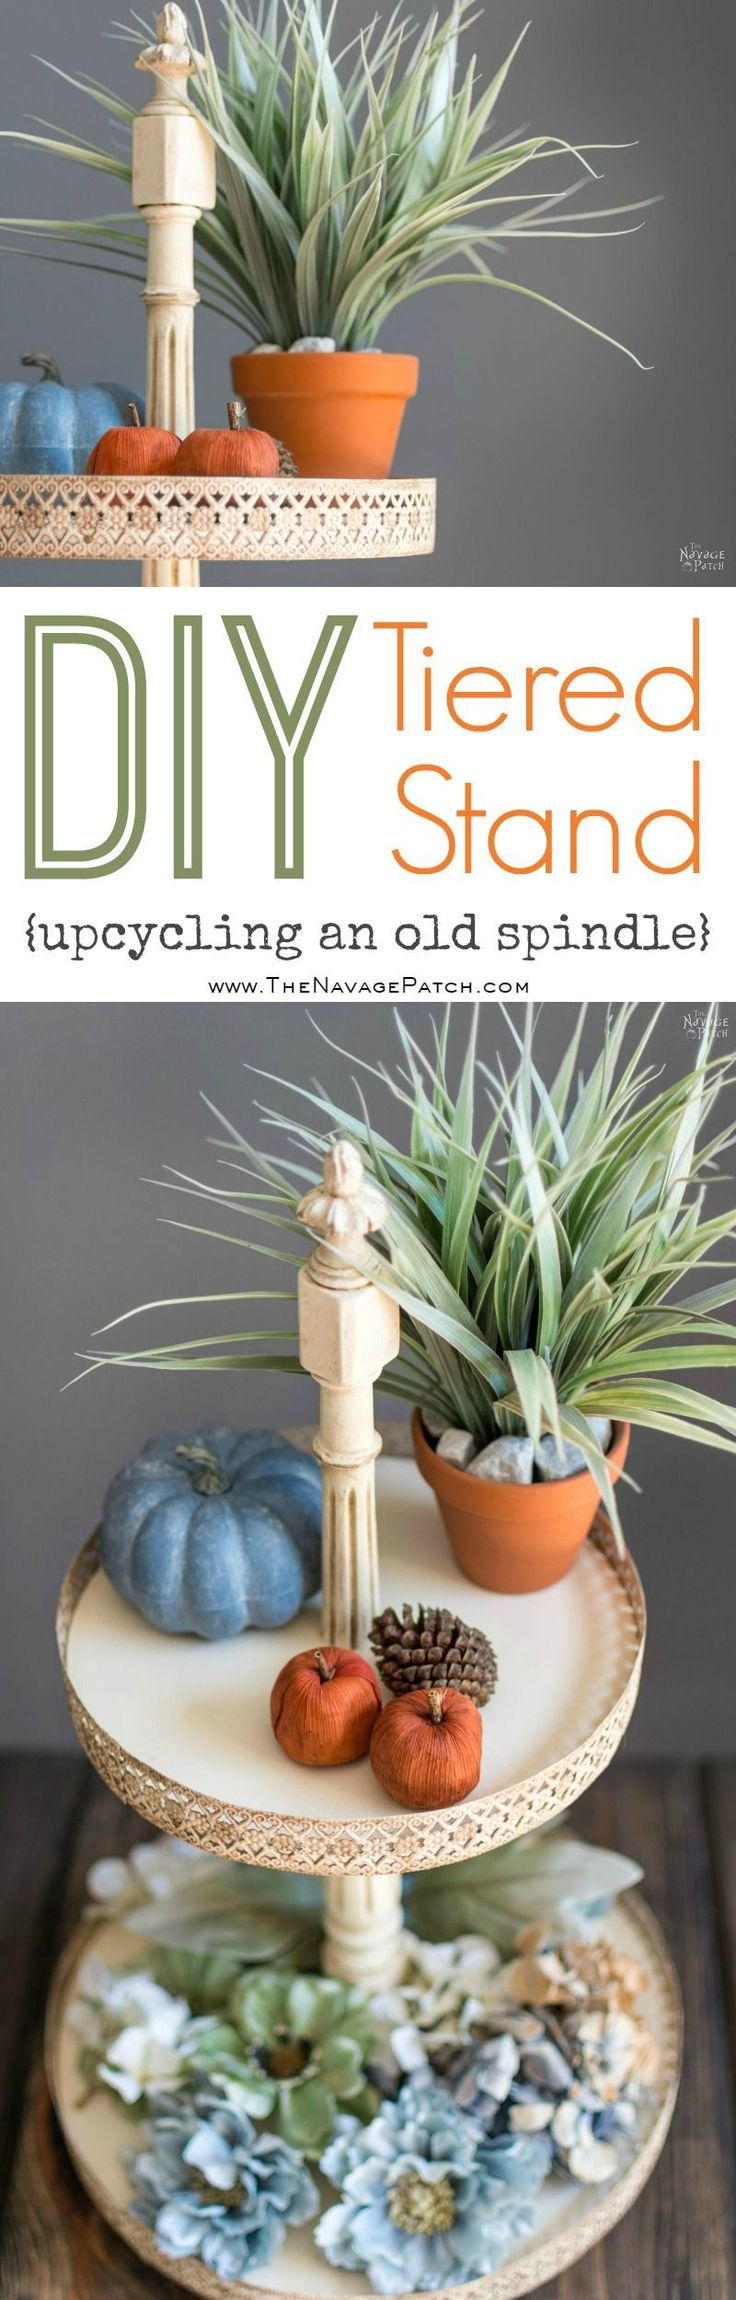 DIY Tiered Stand | How to make Victorian style tiered stand | How to use decorat...